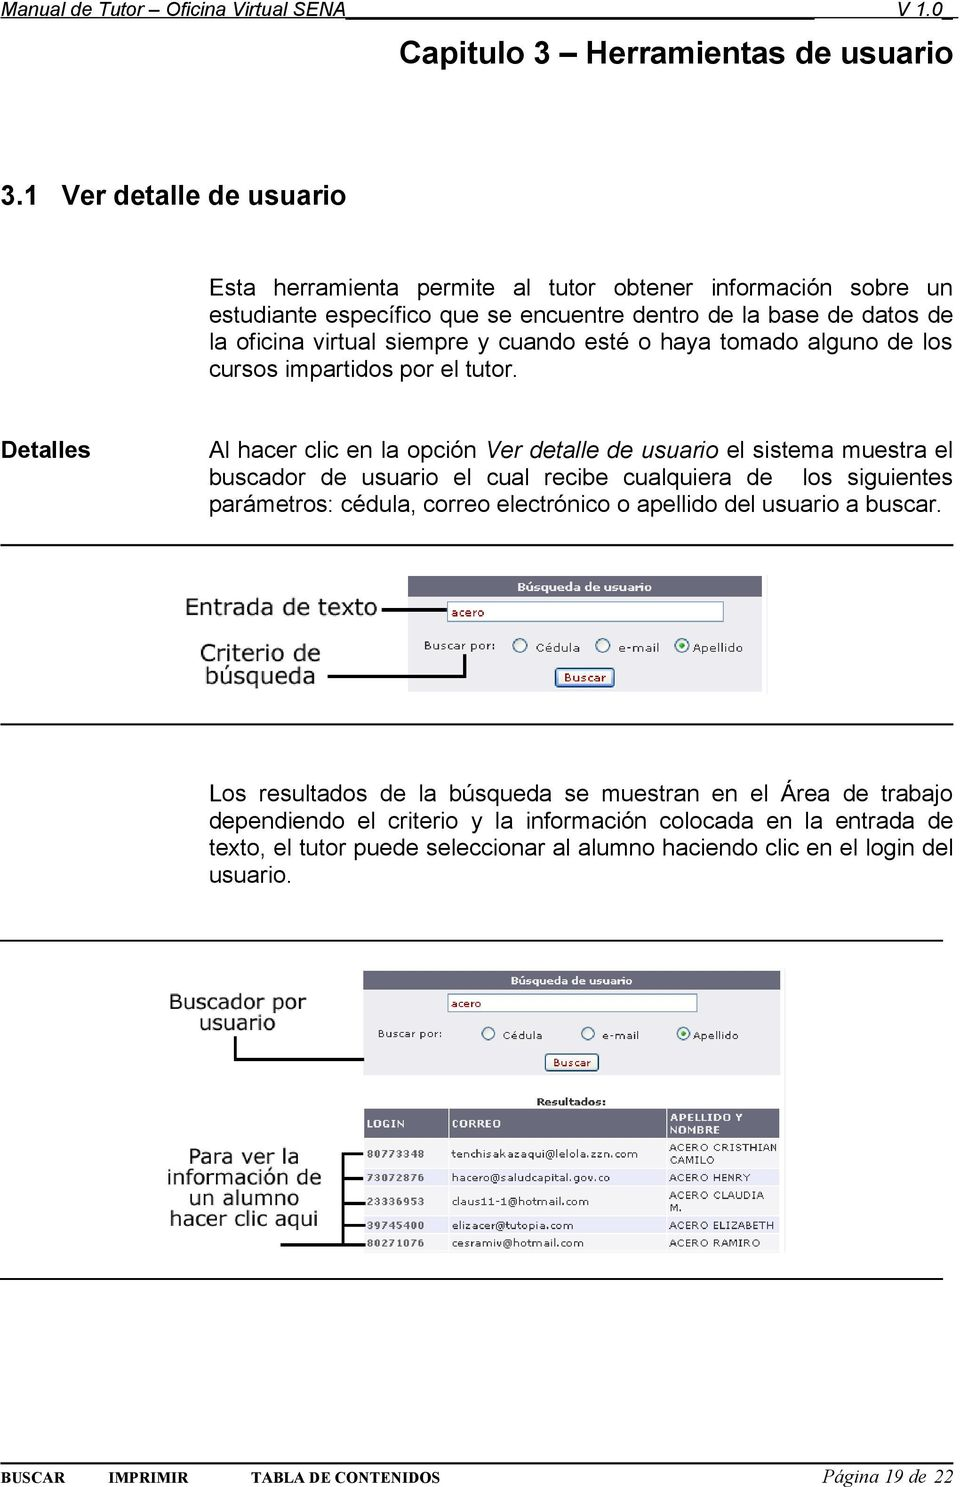 Oficina virtual sis manual de tutor pdf for Correos es oficina virtual